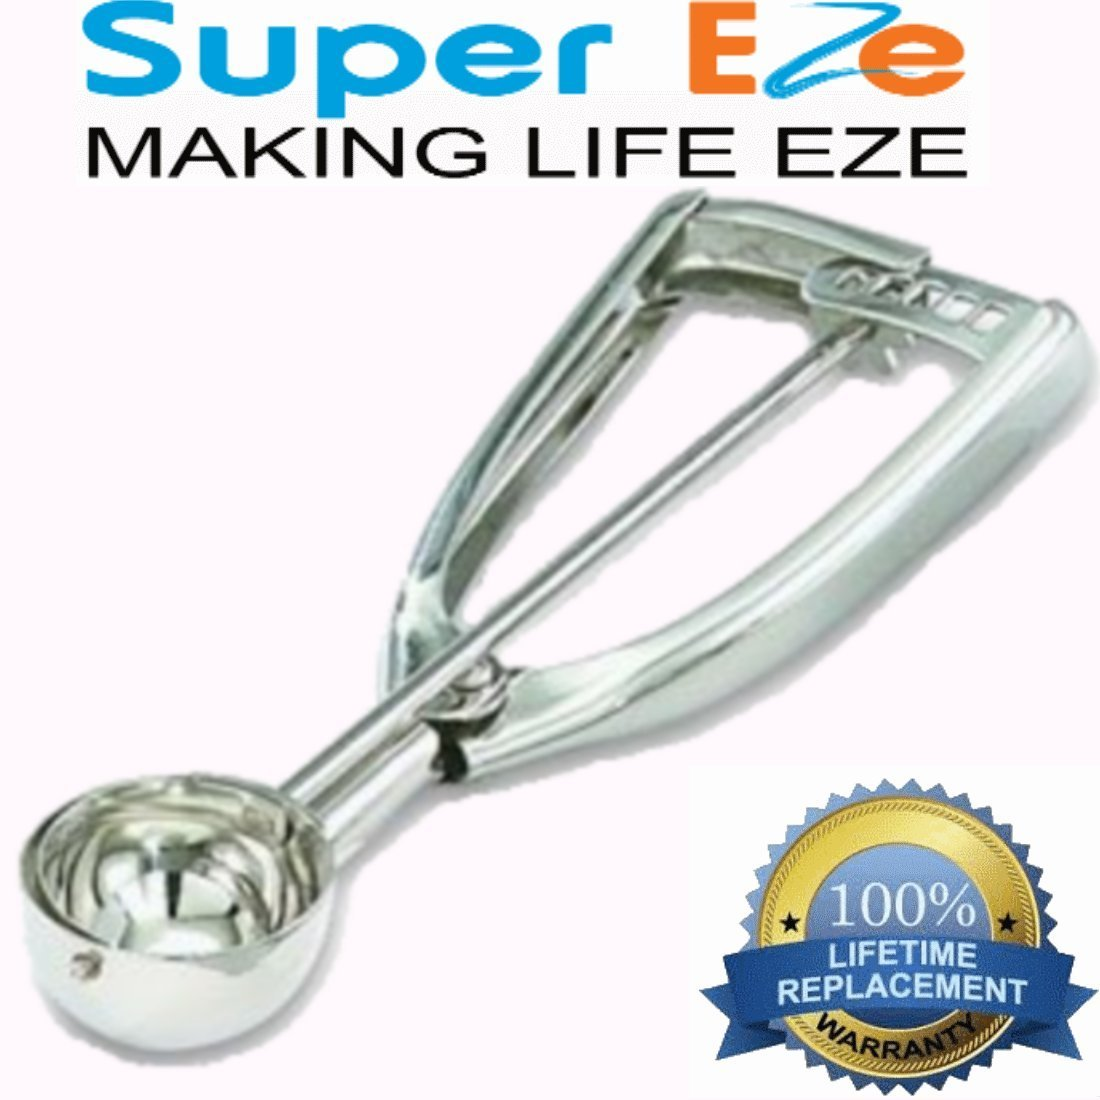 SuperEze Ice Cream & Cookie Dough Scoop made from Stainless Steel (Size 24 Medium Cookie Dropper)